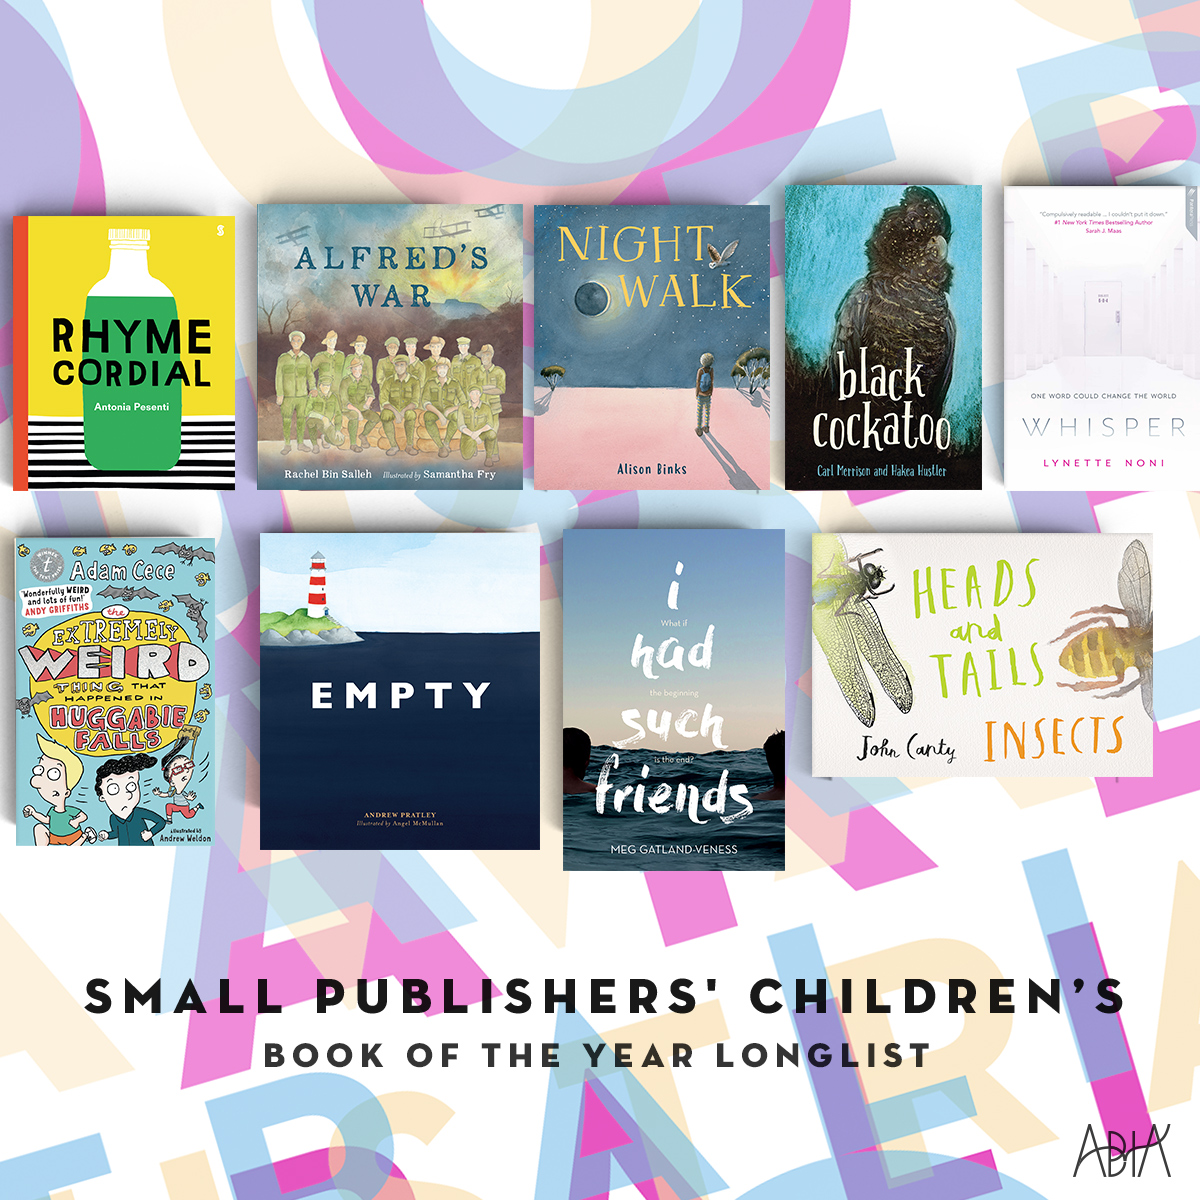 SMALL PUBLISHERS' CHILDREN'S BOOK OF THE YEAR:    Alfred's War,  Rachel Bin Salleh and Samantha Fry (Magabala Books, Magabala Books Aboriginal Corporation)   Black Cockatoo,  Carl Merrison and Hakea Hustler (Magabala Books, Magabala Books Aboriginal Corporation)   Empty,  Andrew Pratley, Angel McMullan(New Frontier Publishing, Little Steps Publishing)   Heads And Tails: Insects, John Canty (author/illustrator), (Berbay Publishing, Berbay Publishing)   I Had Such Friends,  Meg Gatland-Veness (Pantera Press, Pantera Press)   Night Walk,  Alison Binks (writer and illustrator), (Berbay Publishing, Berbay Publishing)   Rhyme Cordial,  Antonia Pesenti (Scribe Publications, Scribble Kids' Books)   The Extremely Weird Thing that Happened in Huggabie Falls,  Adam Cece (illustrated by Andrew Weldon) (Text Publishing, Text Publishing)   Whisper,  Lynette Noni (Pantera Press, Pantera Press)